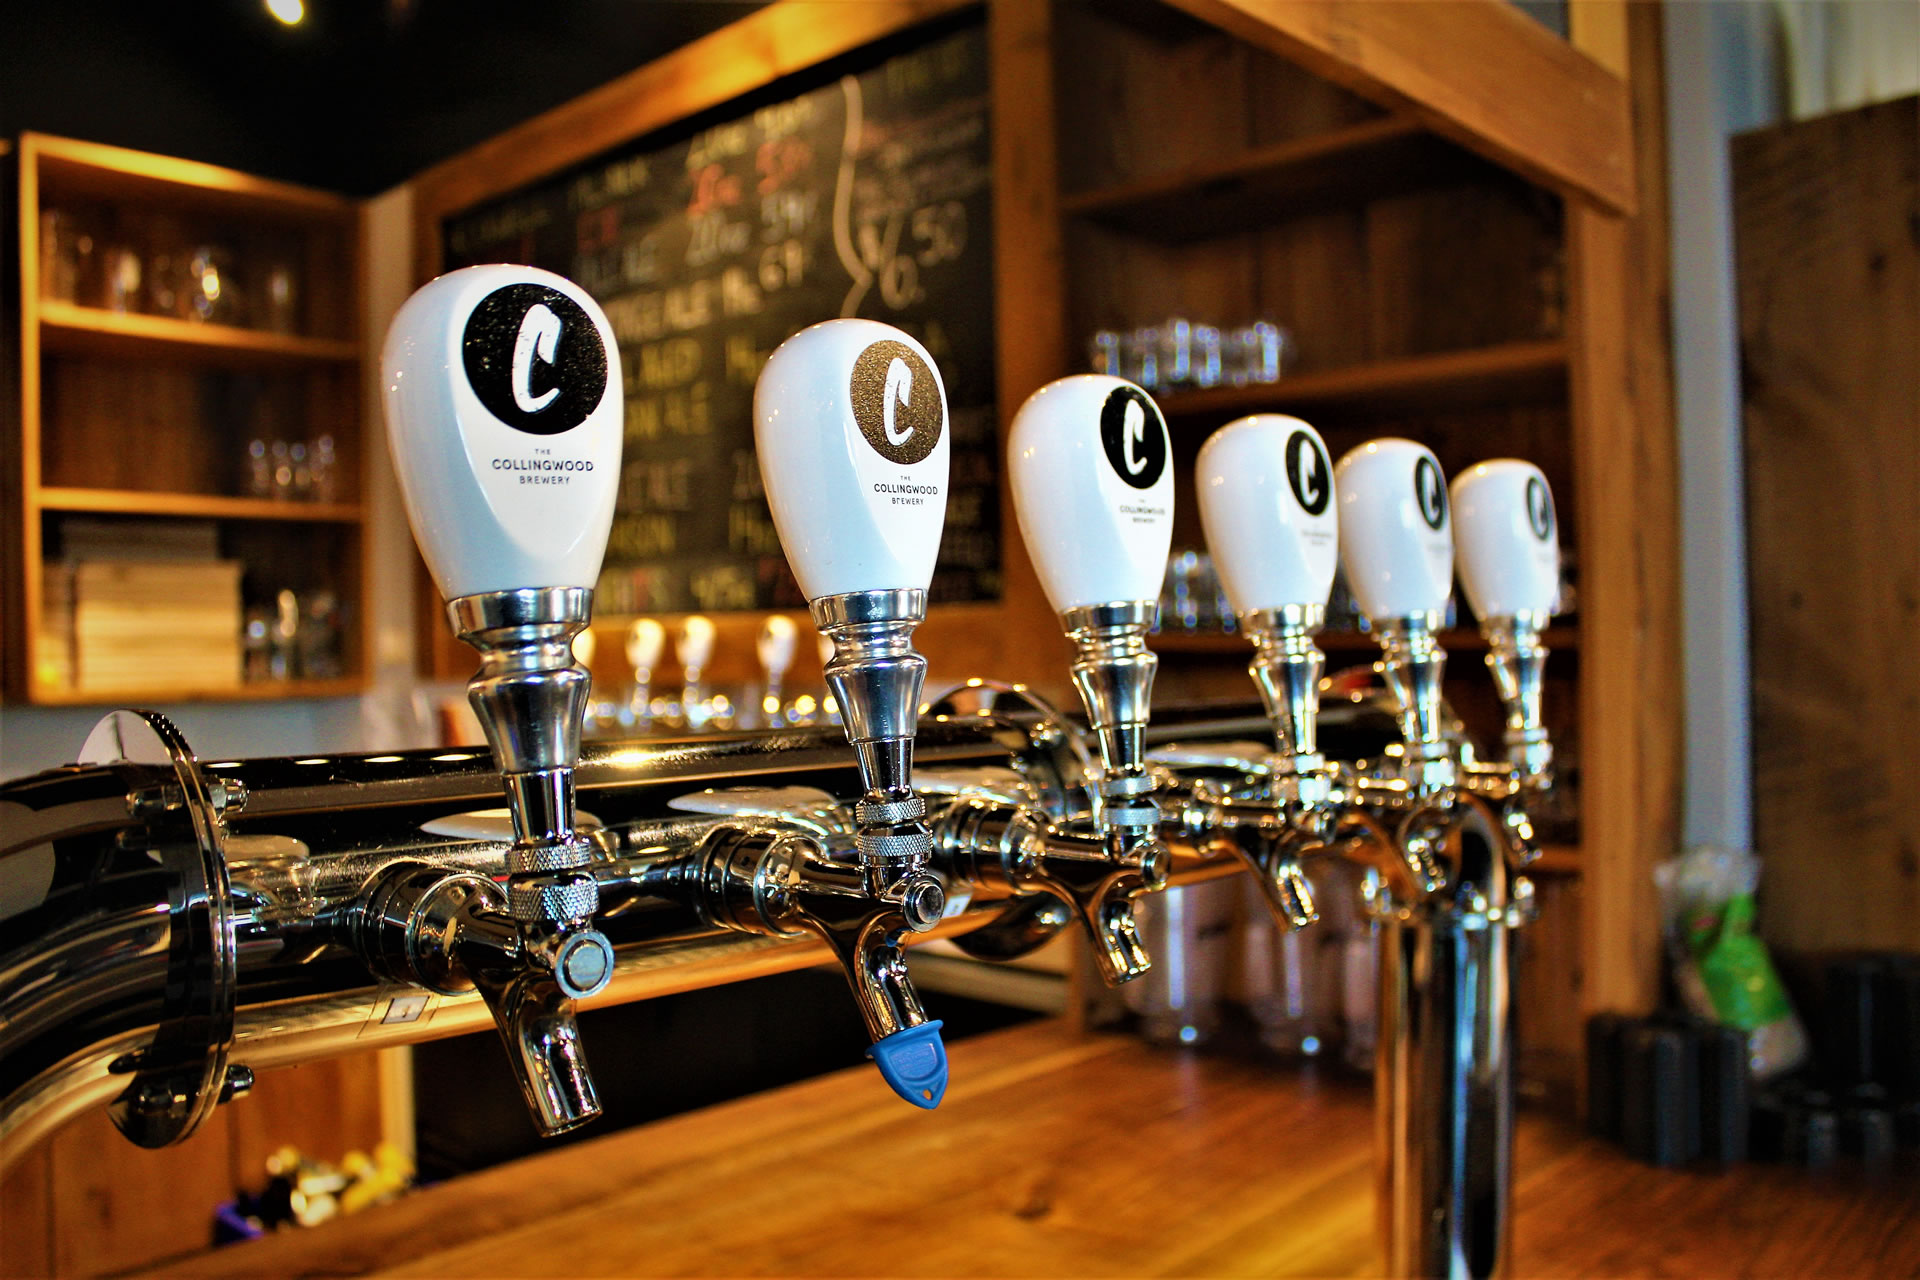 Micro Brewery Collingwood